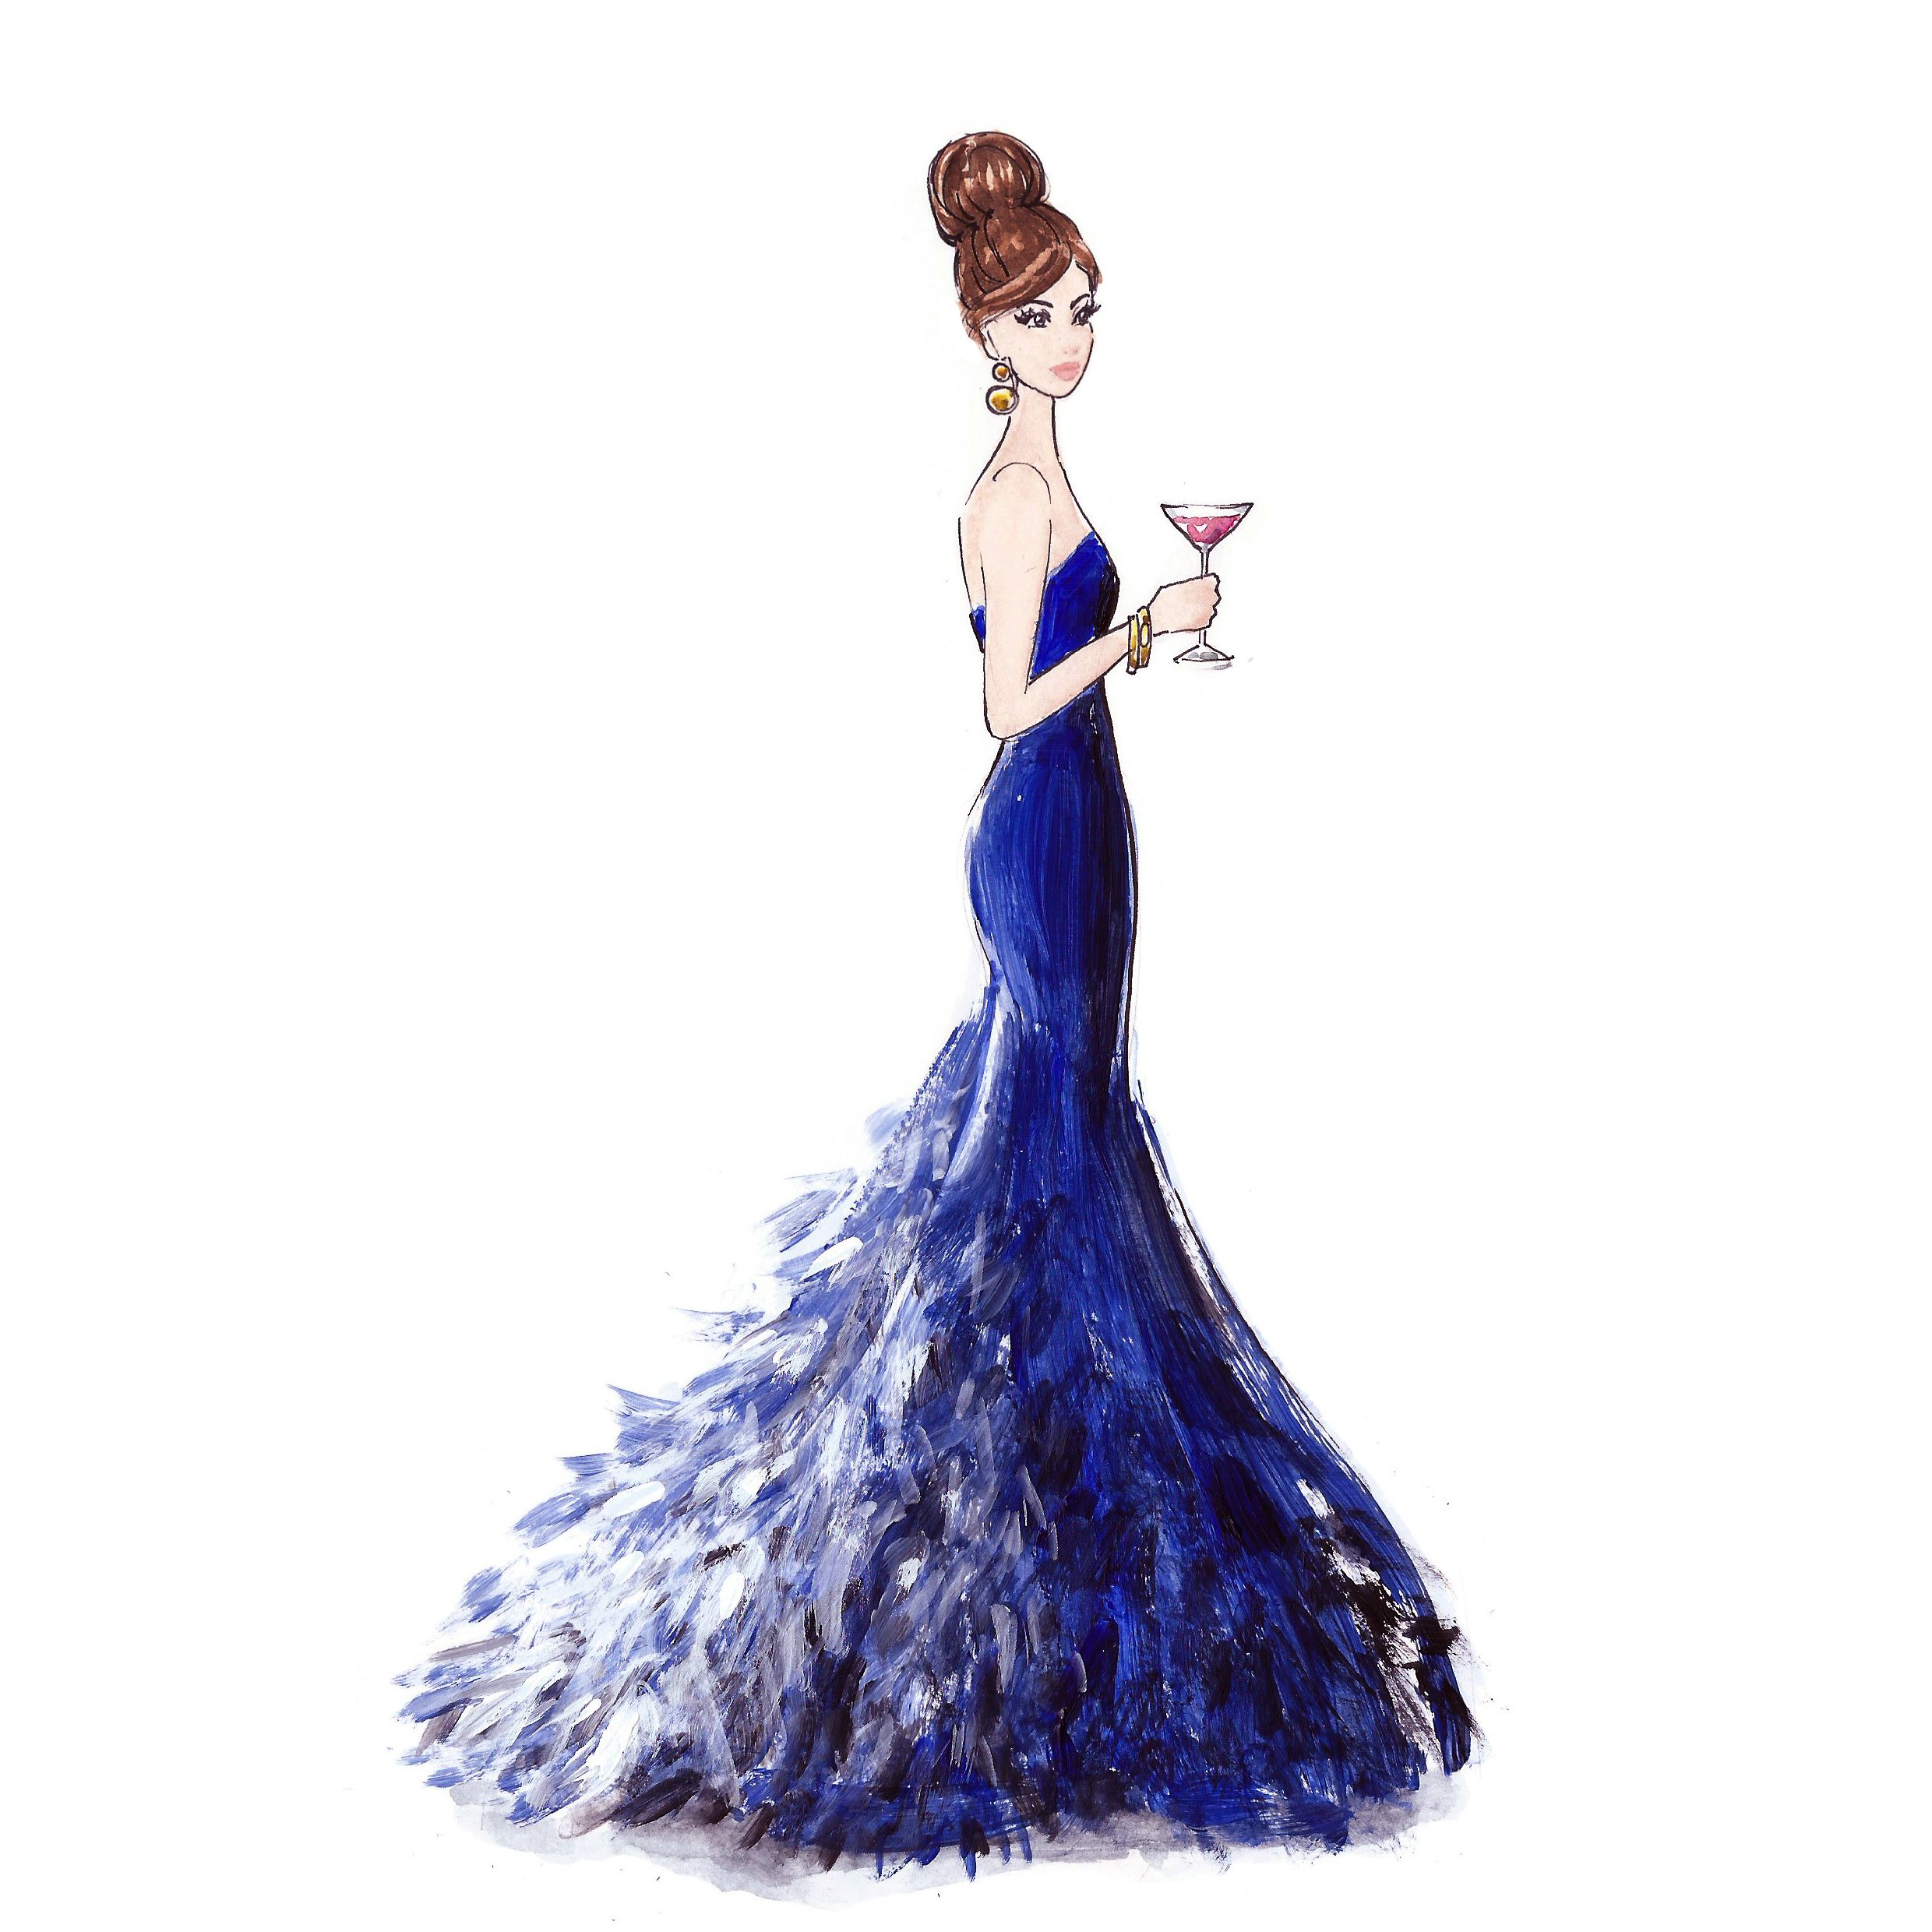 Couture Blue Feather Dress Fashion Illustration Dress Illustration Feather Dress Blue Feather Dress